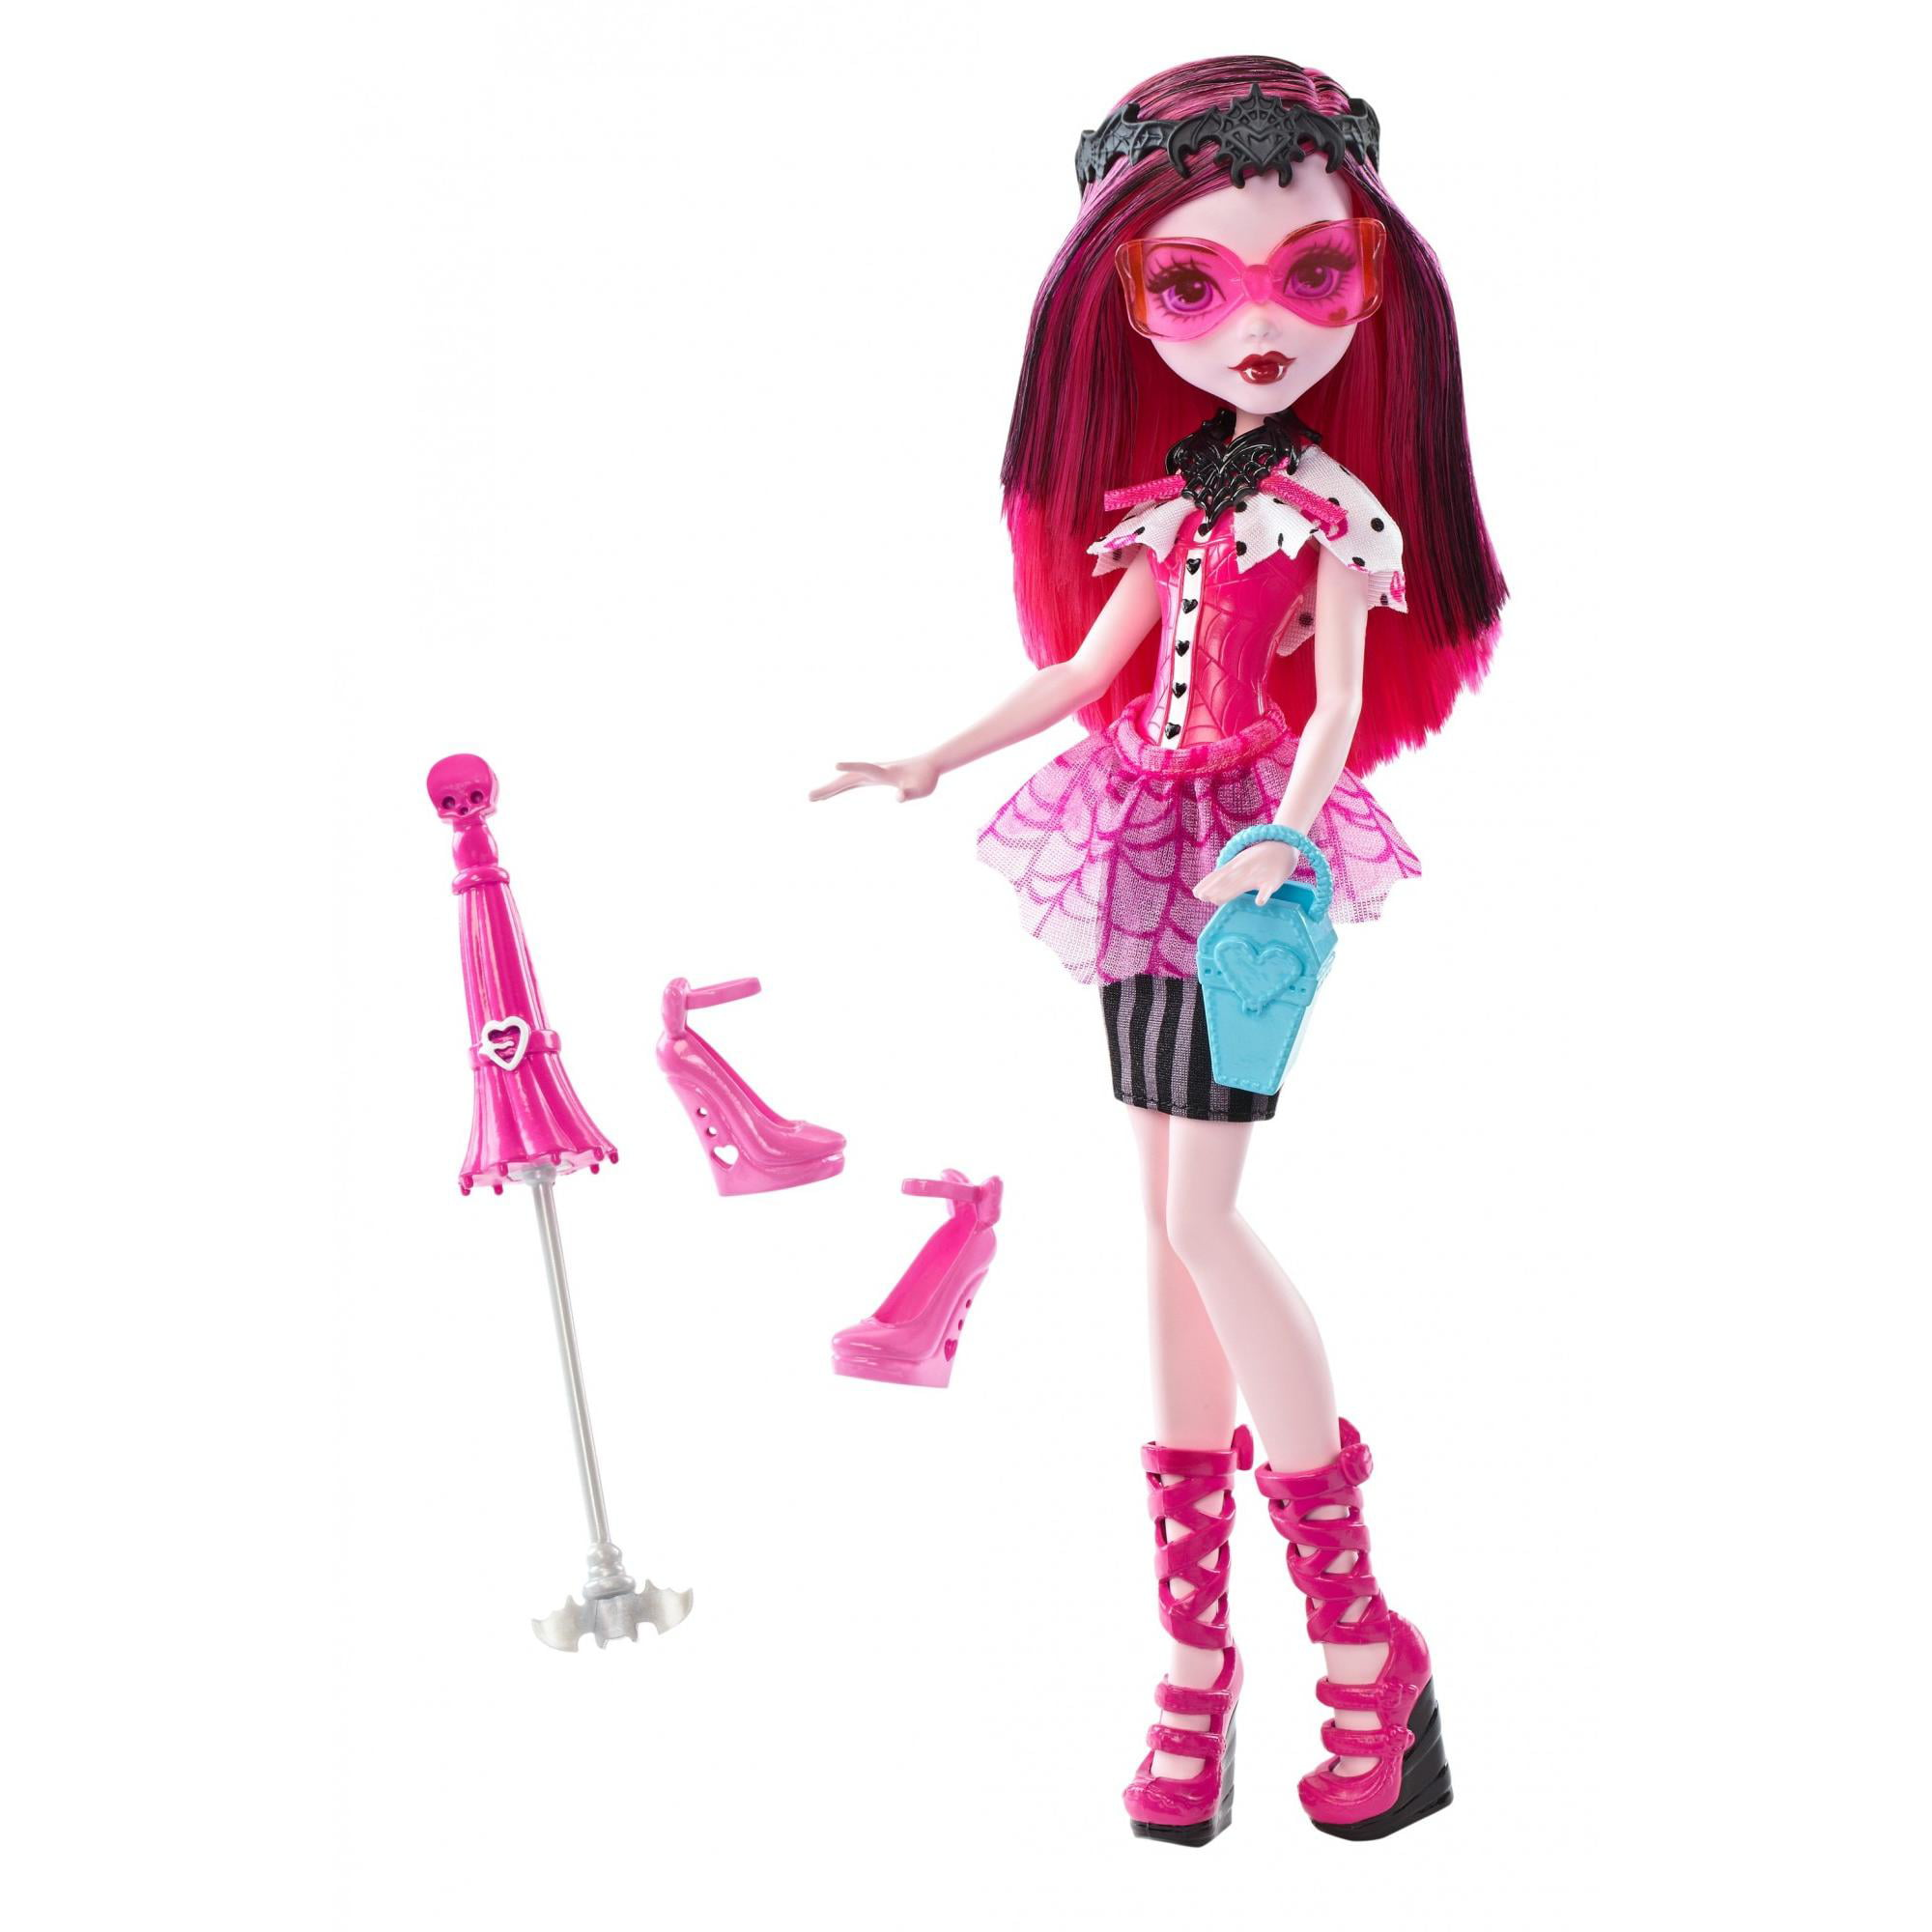 Monster High Day-To-Night Fashions Draculaura Doll by Mattel